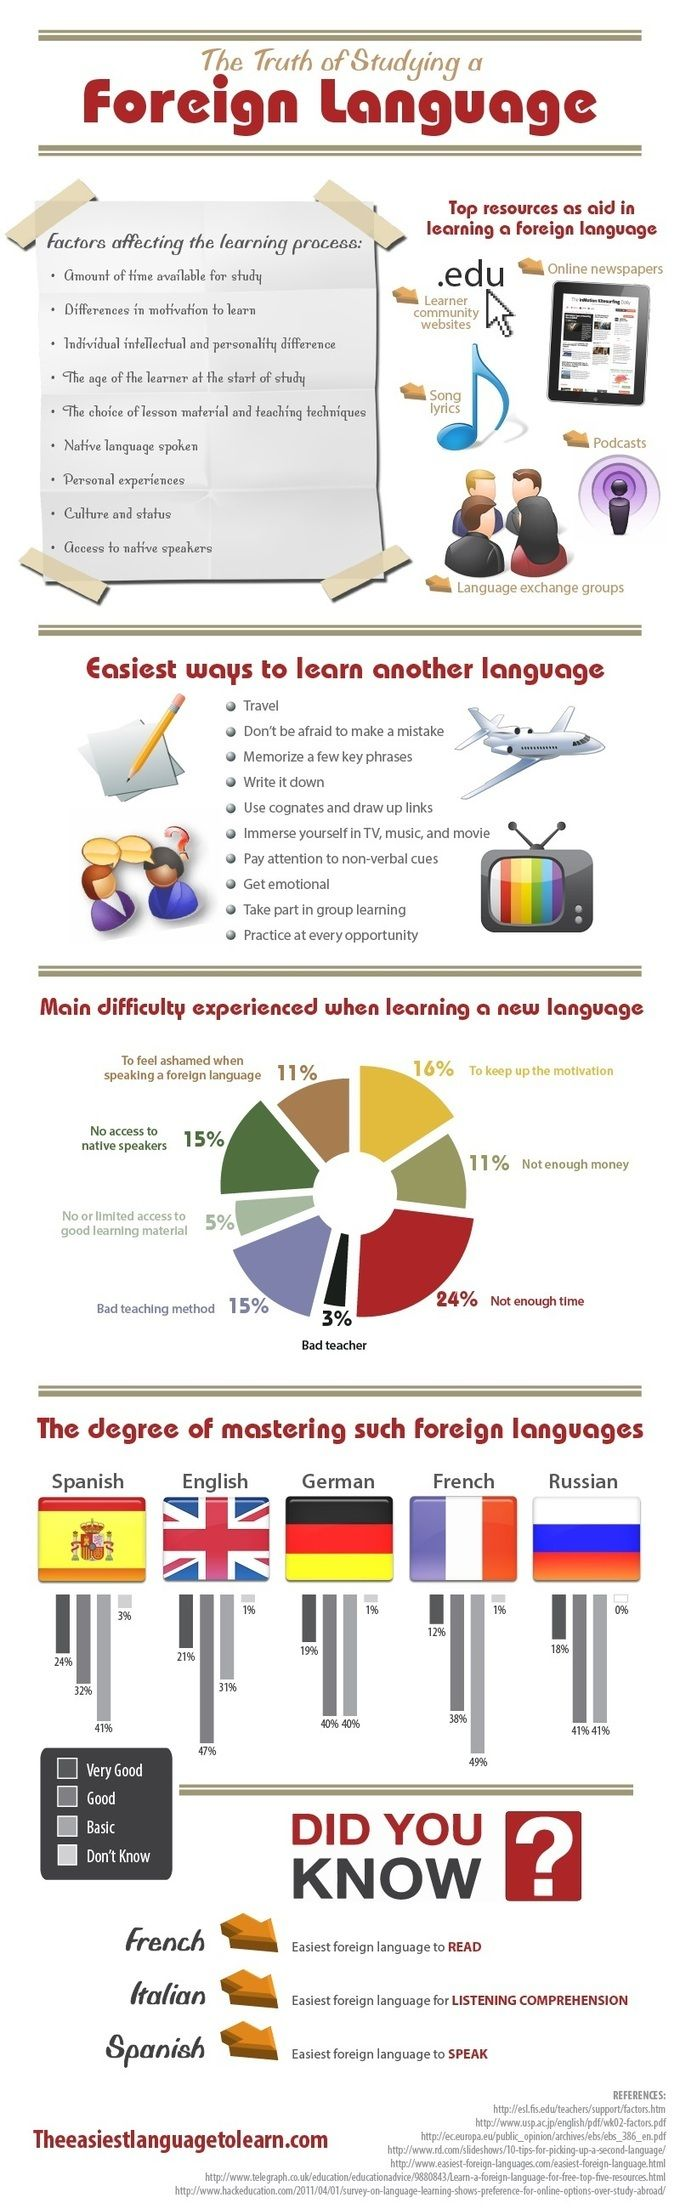 Barack Obama Essay Paper Infographic  The Truth Of Studying A Foreign Language English Language Essay also Examples Of A Thesis Statement For An Essay Infographic  The Truth Of Studying A Foreign Language  Language  Othello Essay Thesis